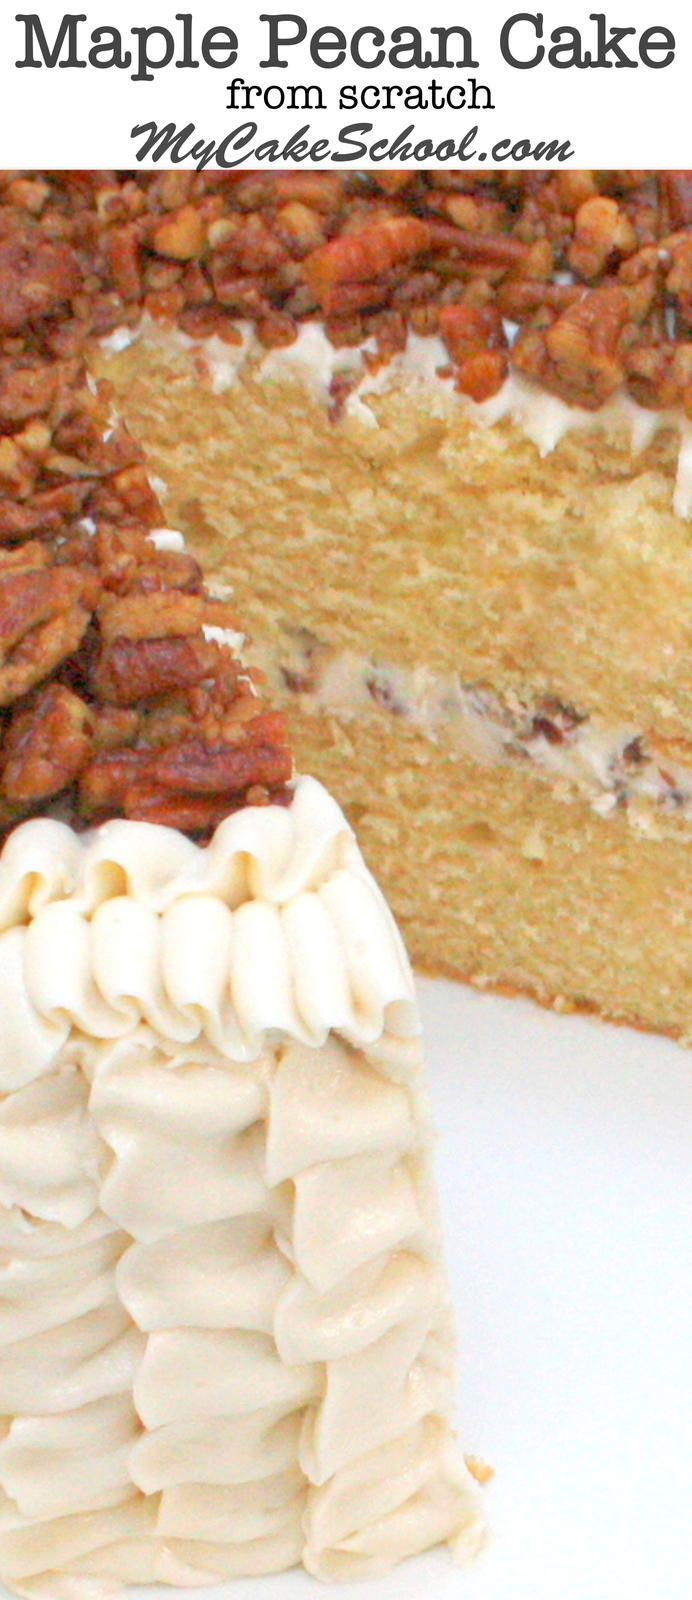 YUM! Moist and Flavorful Maple Pecan Cake with Maple Buttercream! So delicious! MyCakeSchool.com.